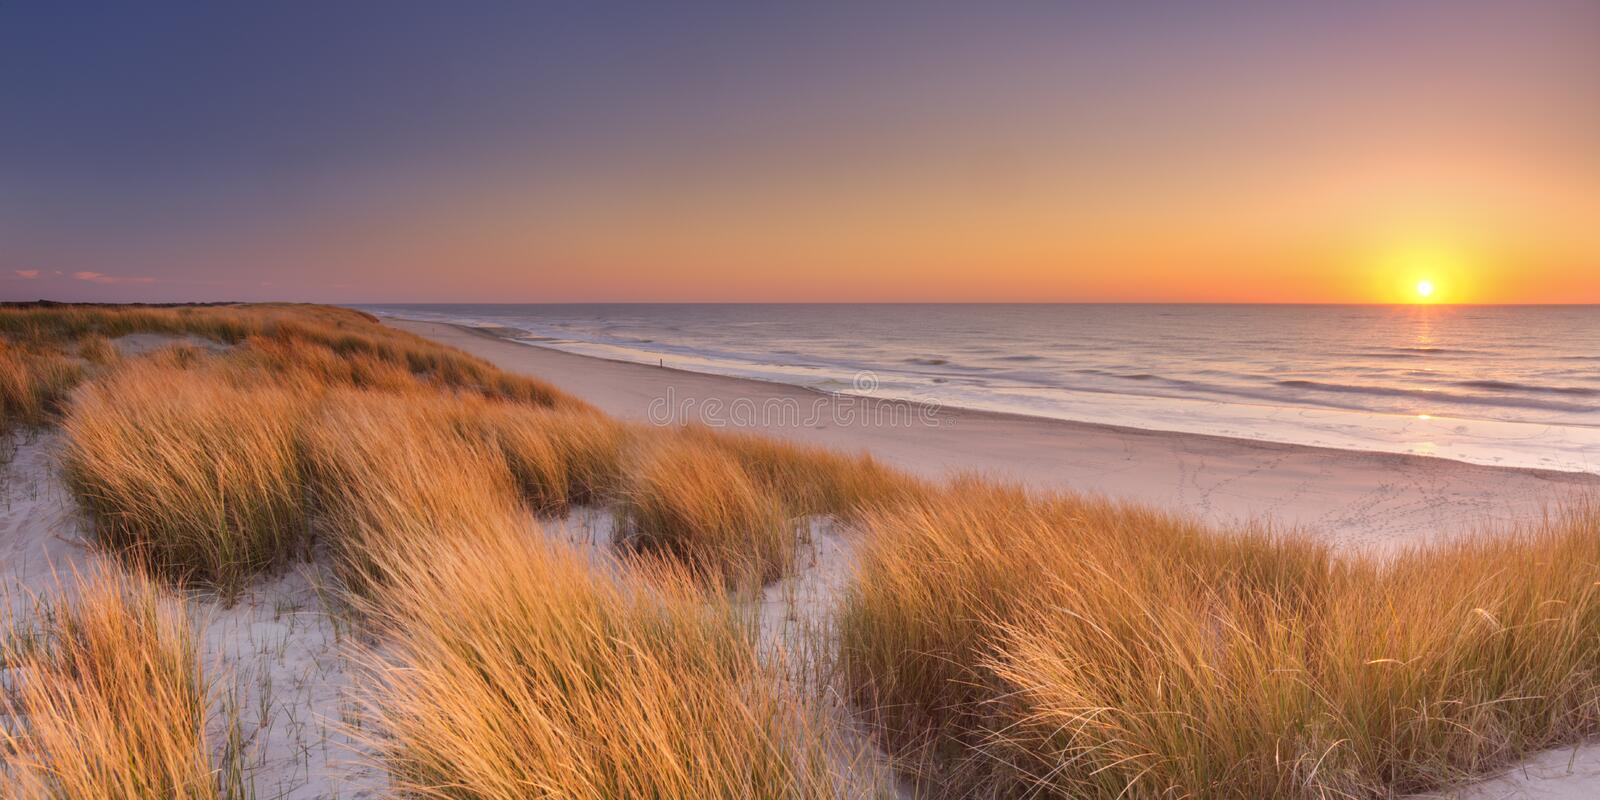 Dunes and beach at sunset on Texel island, The Netherlands stock image